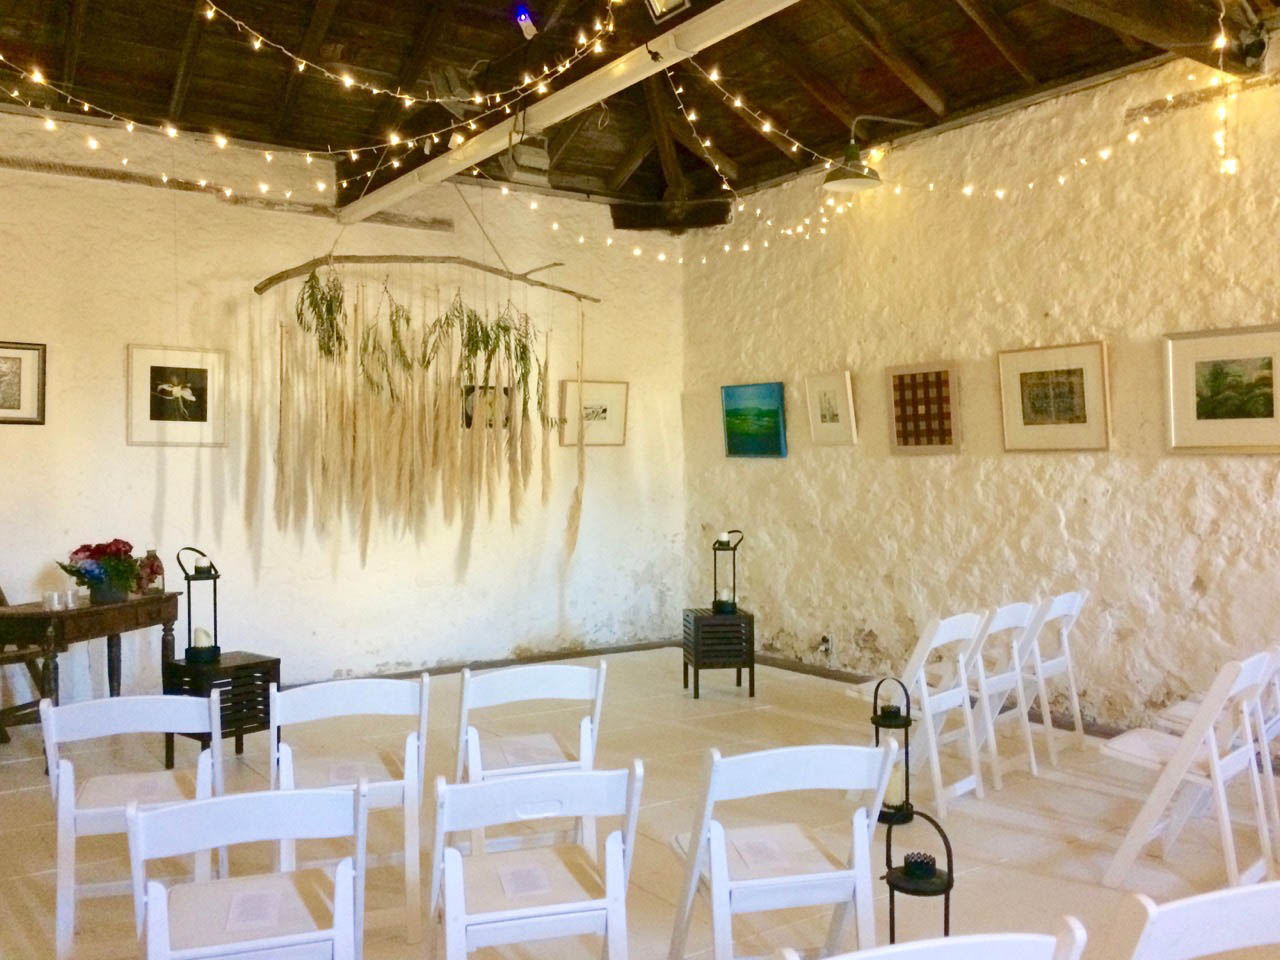 The Second Gallery Set Up For A Wedding